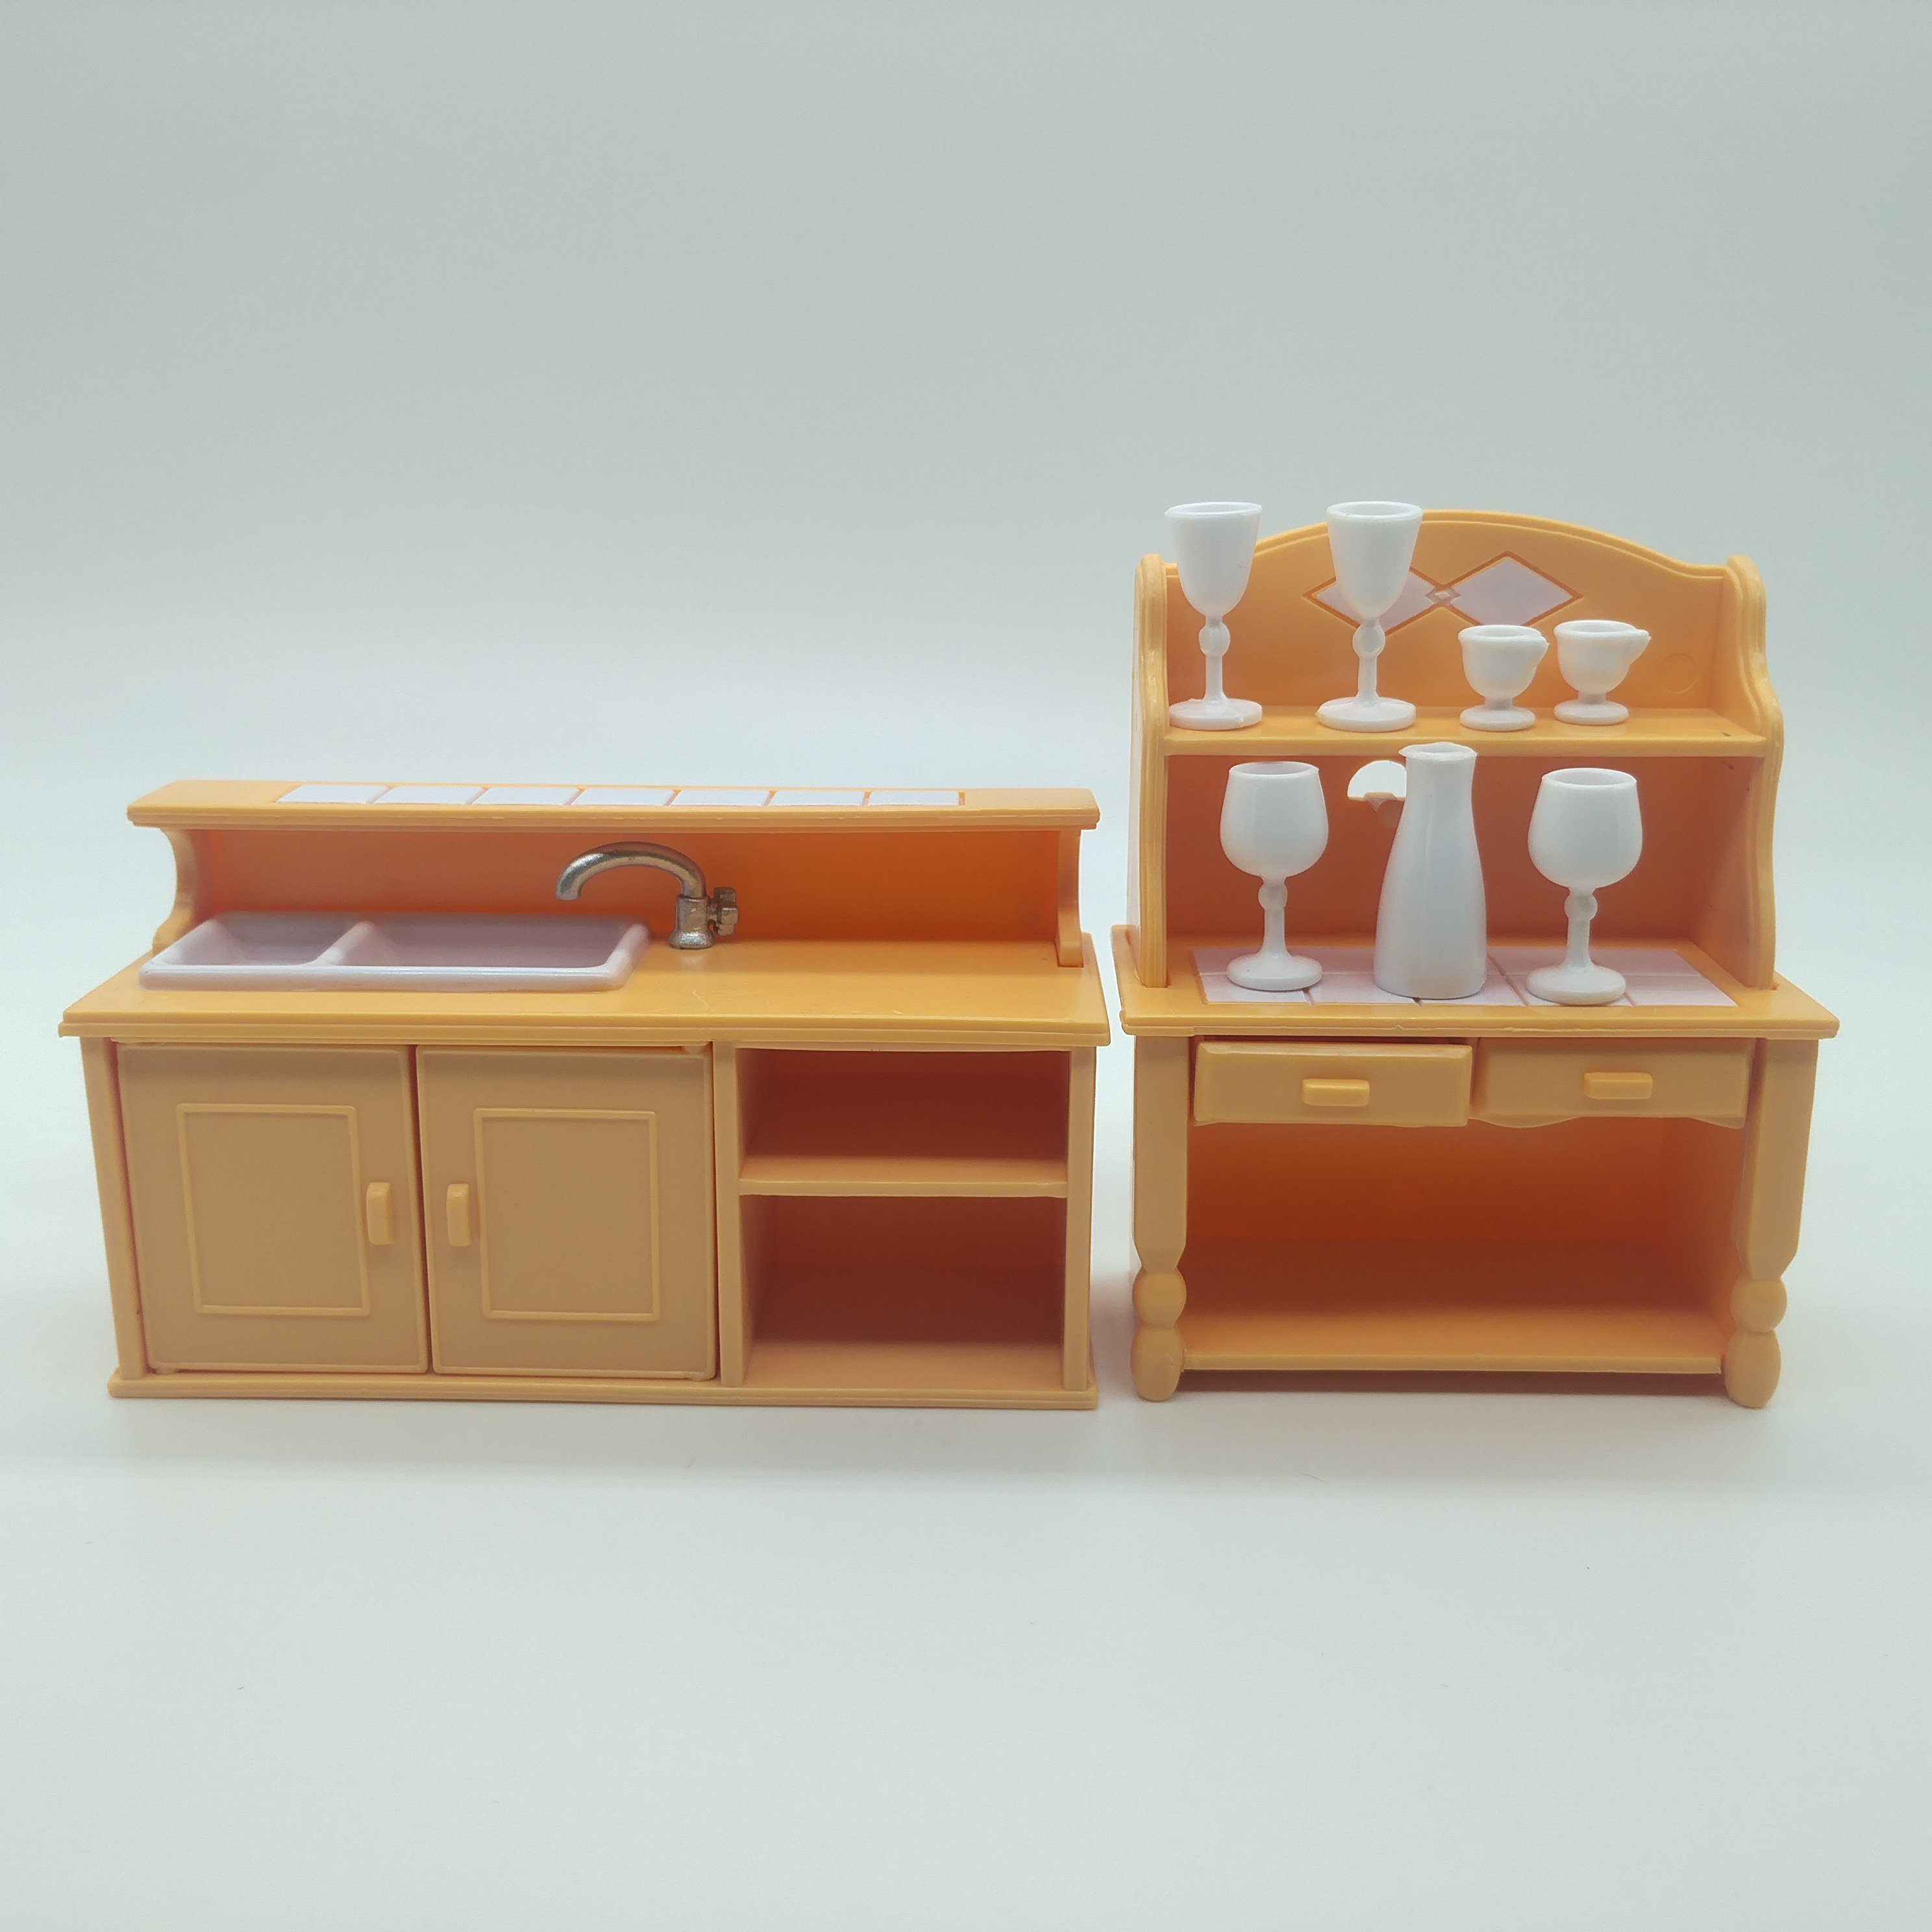 Happy Family Kithcen Bar Table Furniture Figures Dolls Toy Mini Furniture Miniature Dollhouse Pretend Child's Children Toy Gift